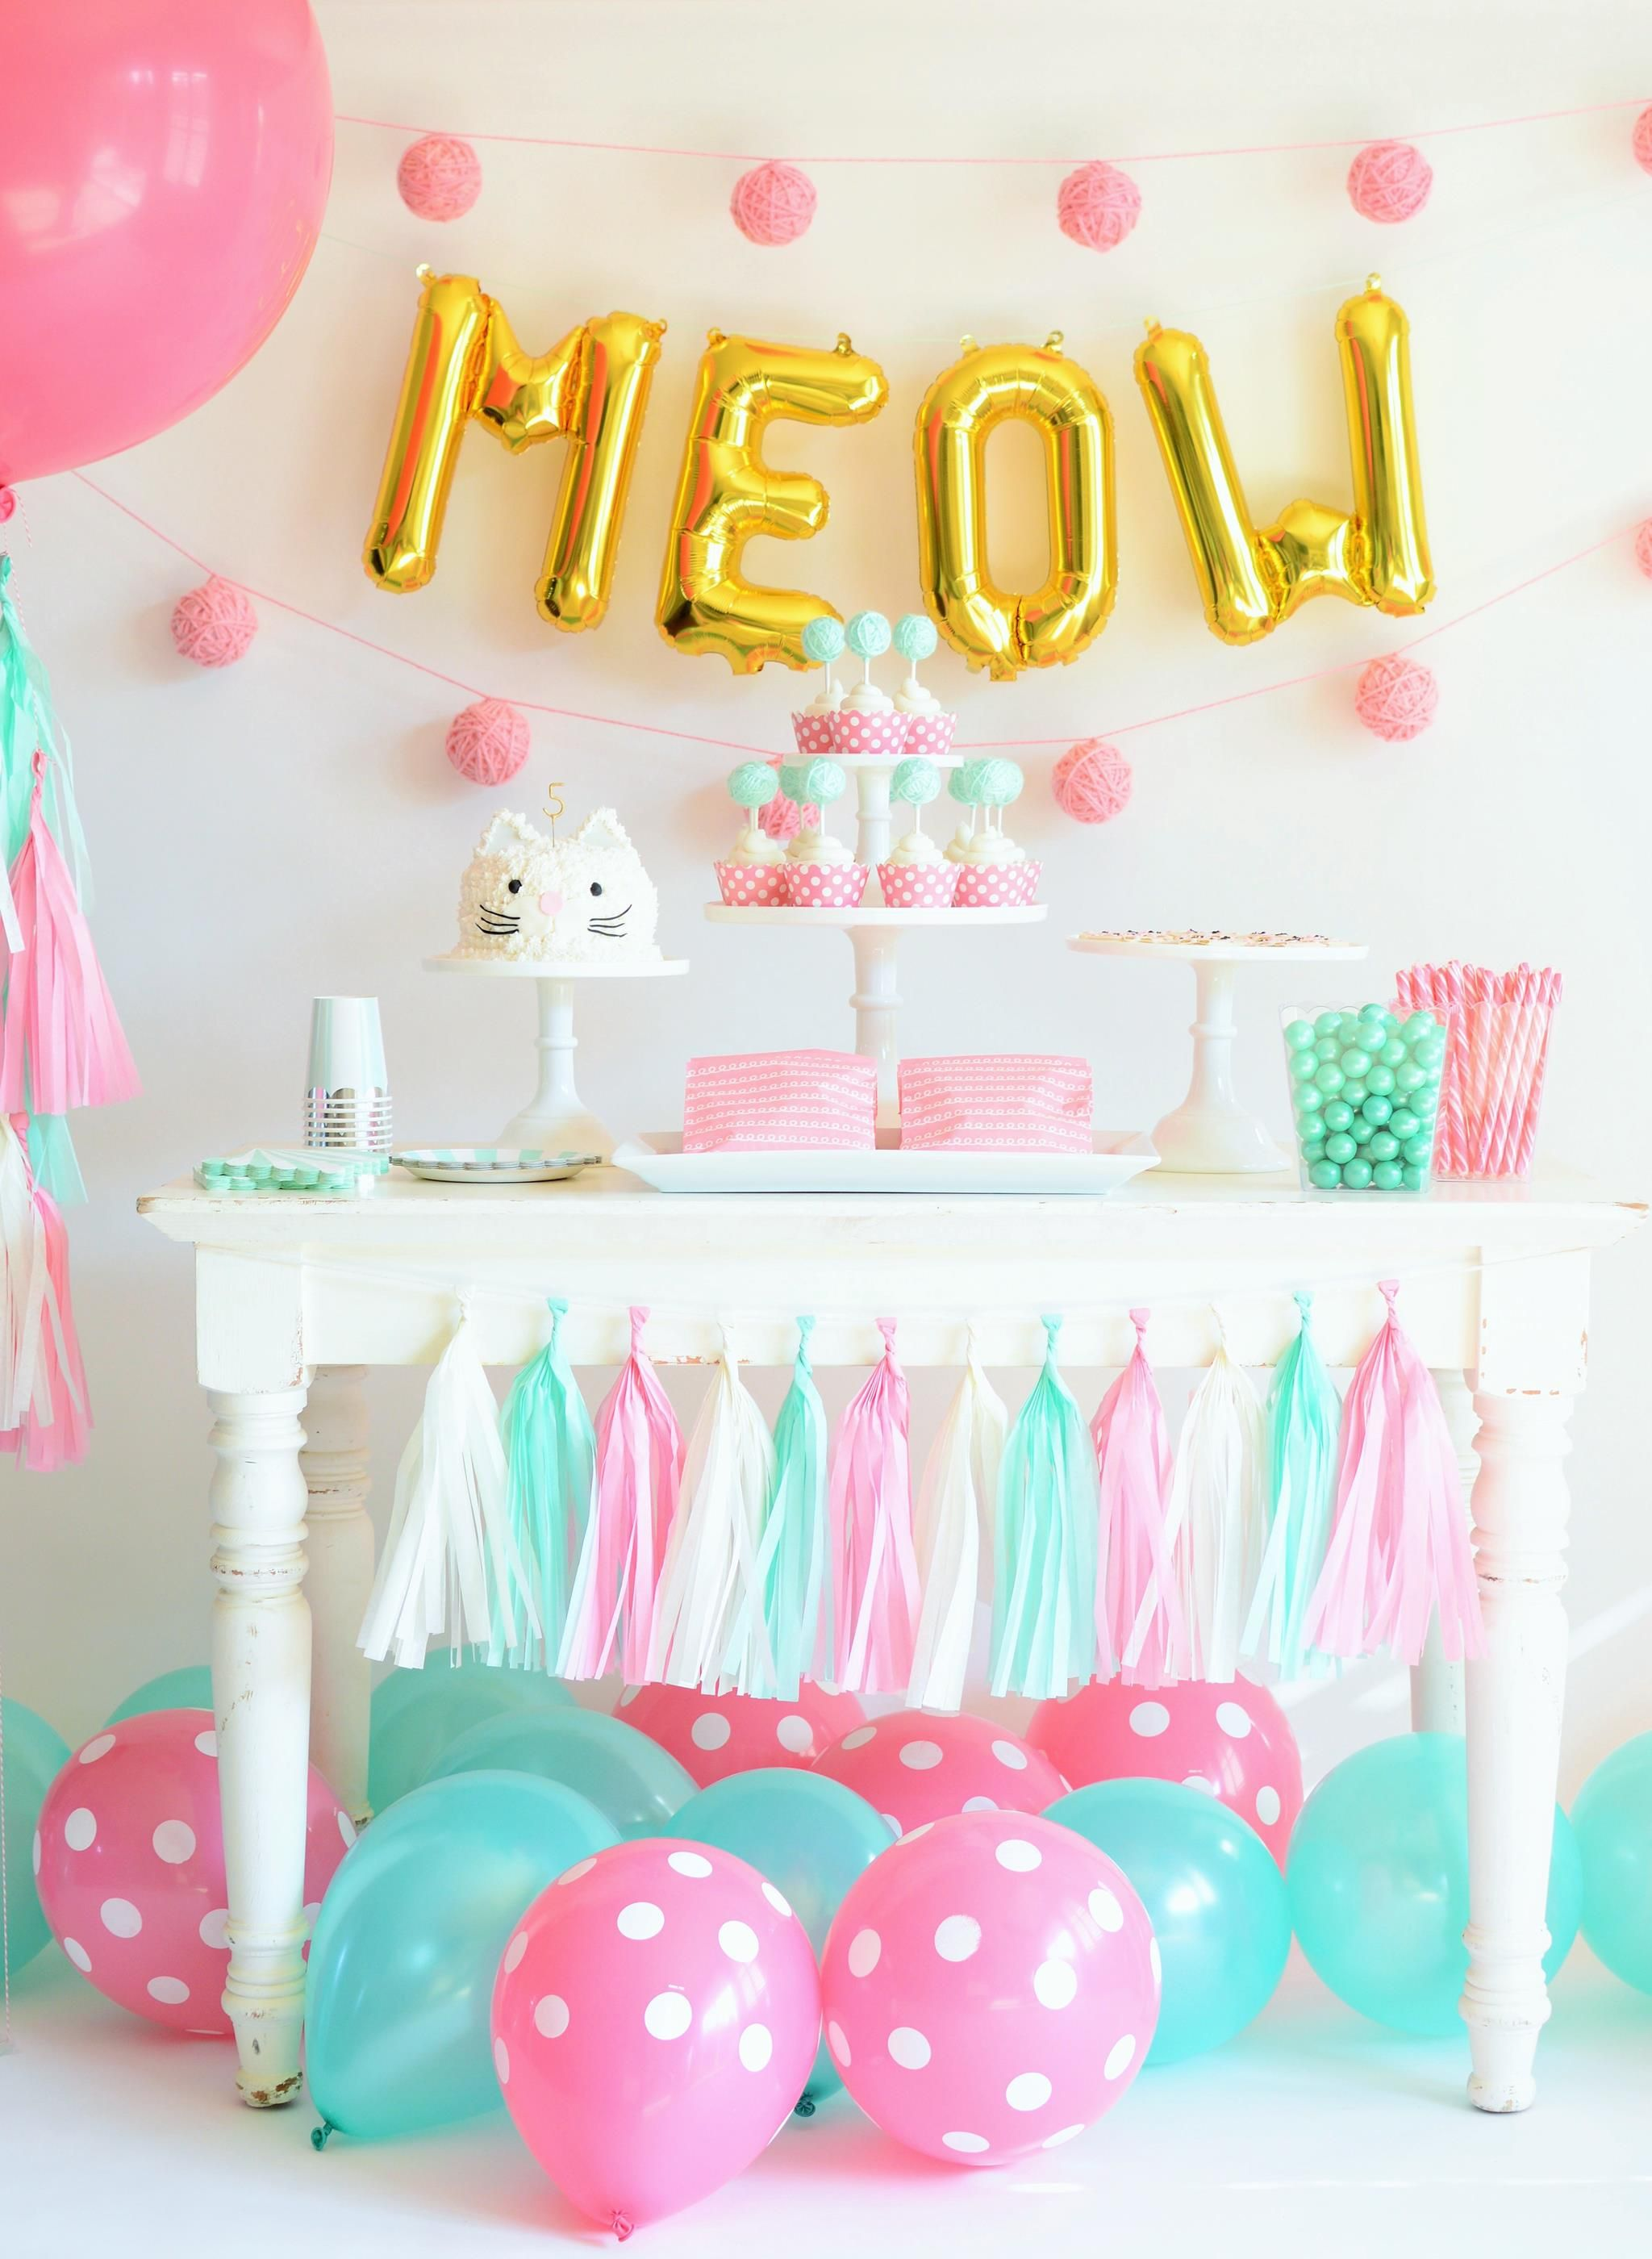 toddler birthday party themes ; 41949d08271ee0a81c403f3946406dea